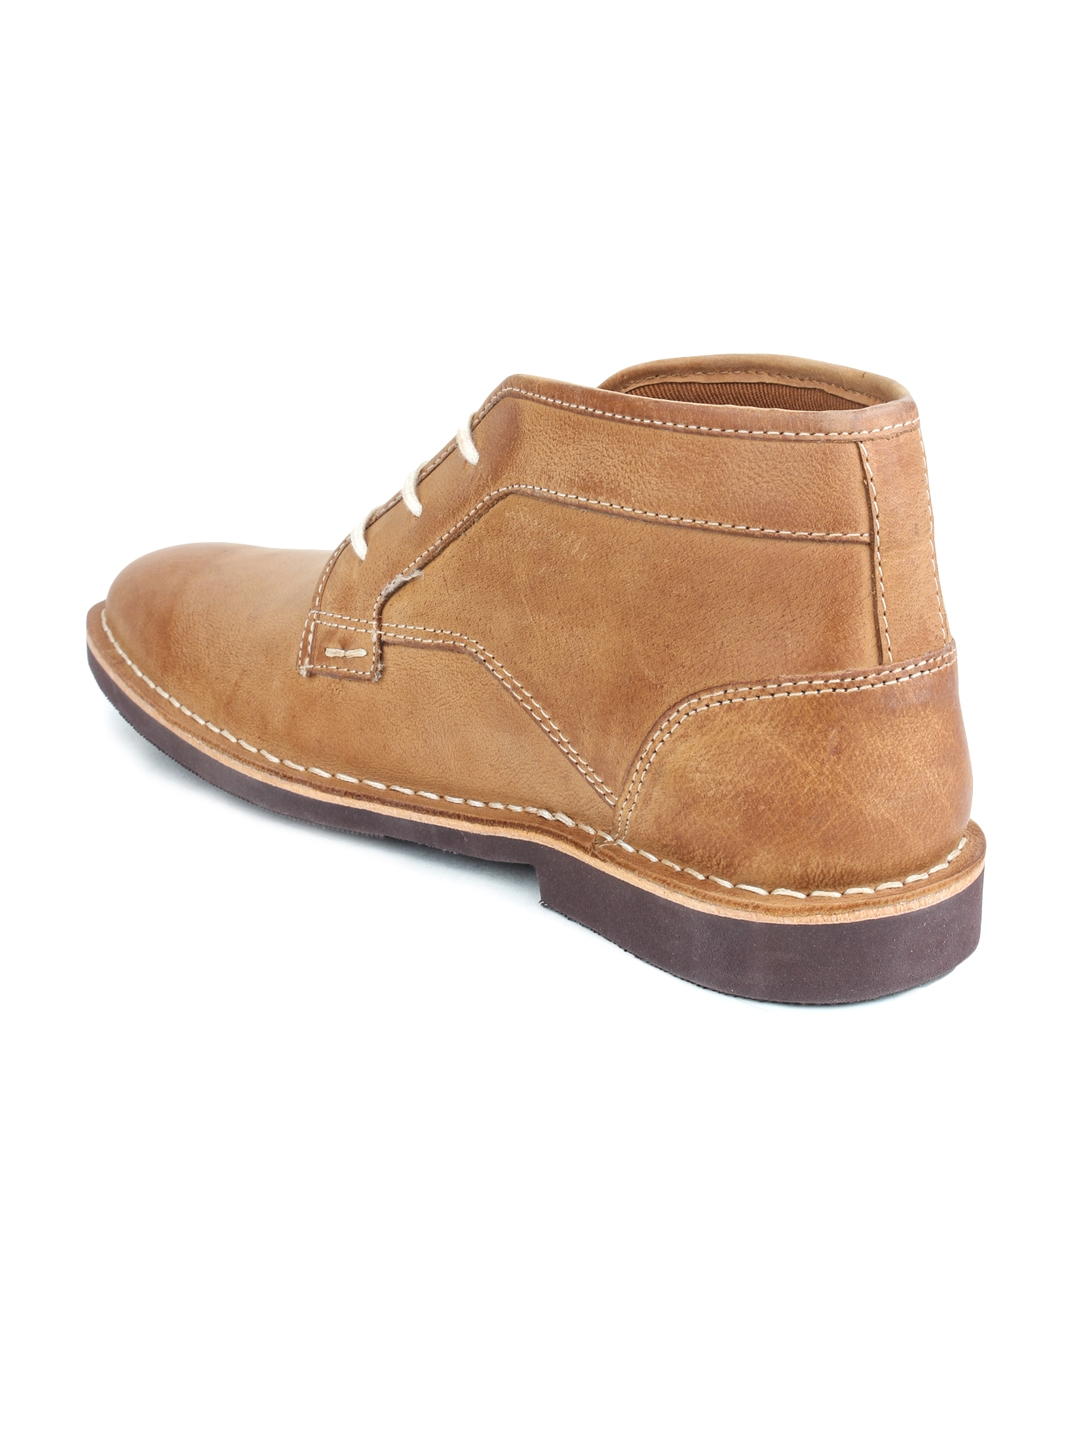 Buy Red Tape Men Tan Brown Leather Chukka Boots - Casual Shoes for ... 58615e5c9db